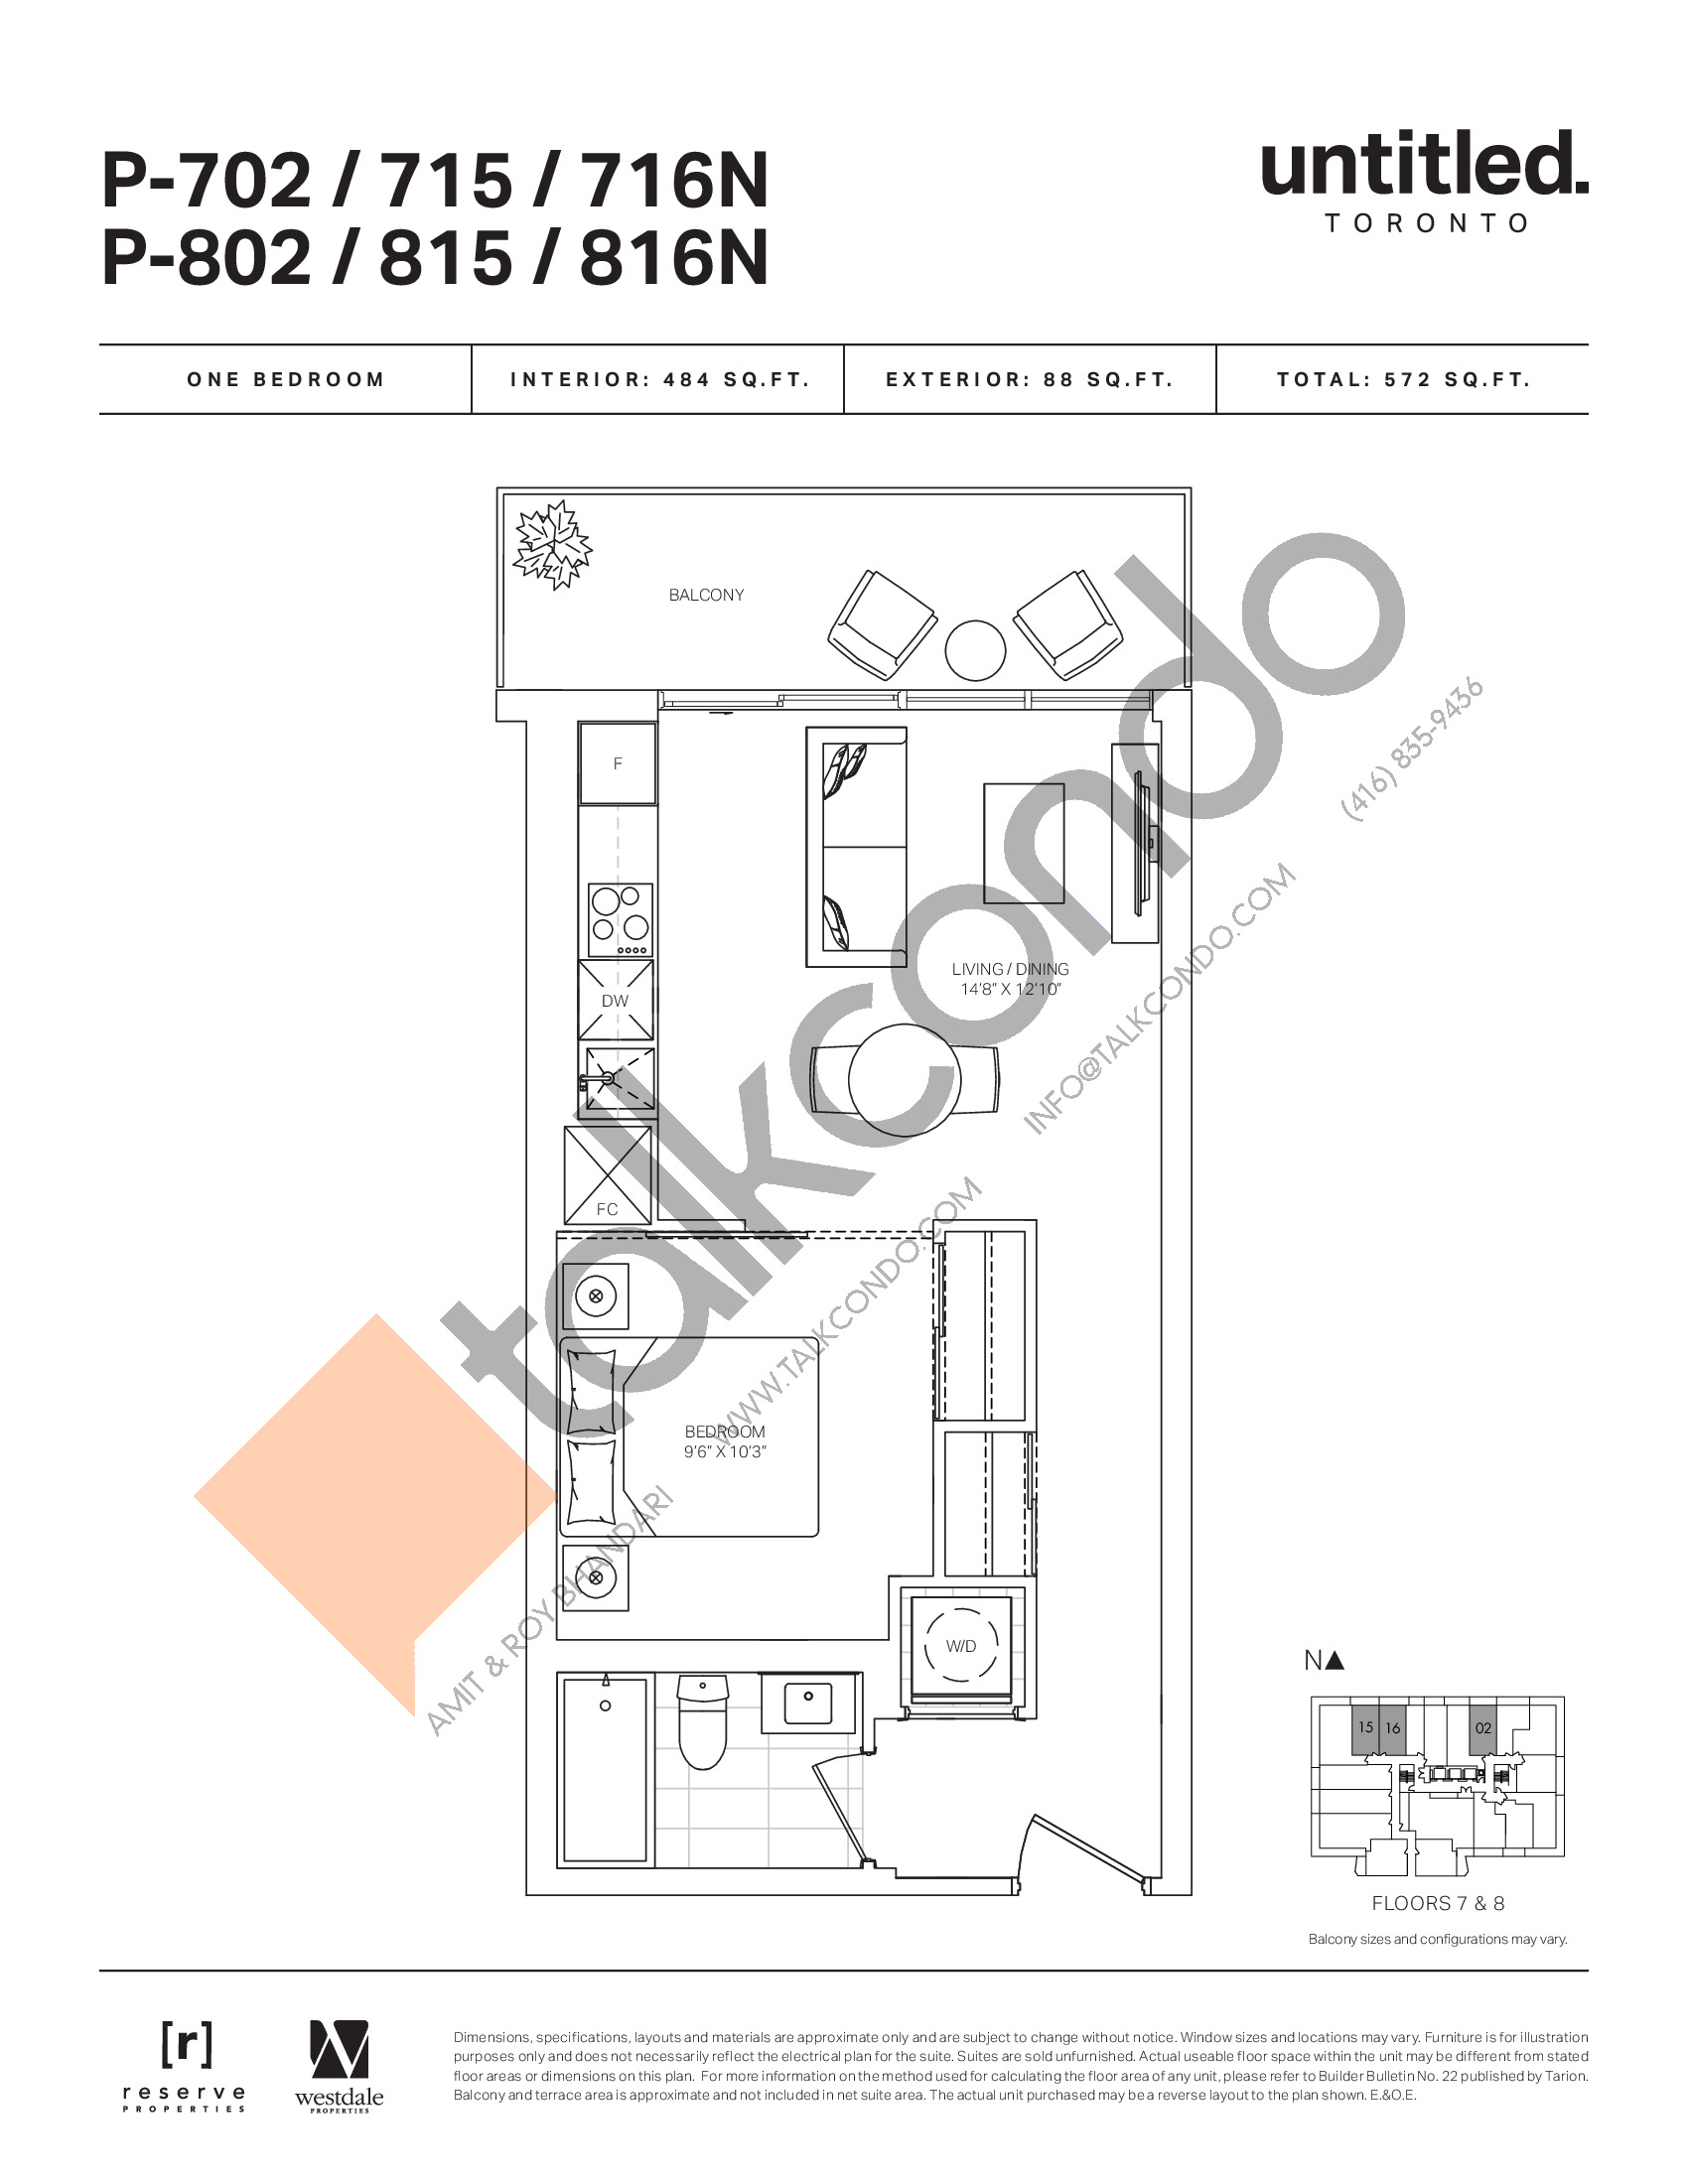 P-702/715/716N P-802/815/816N Floor Plan at Untitled North Tower Condos - 484 sq.ft